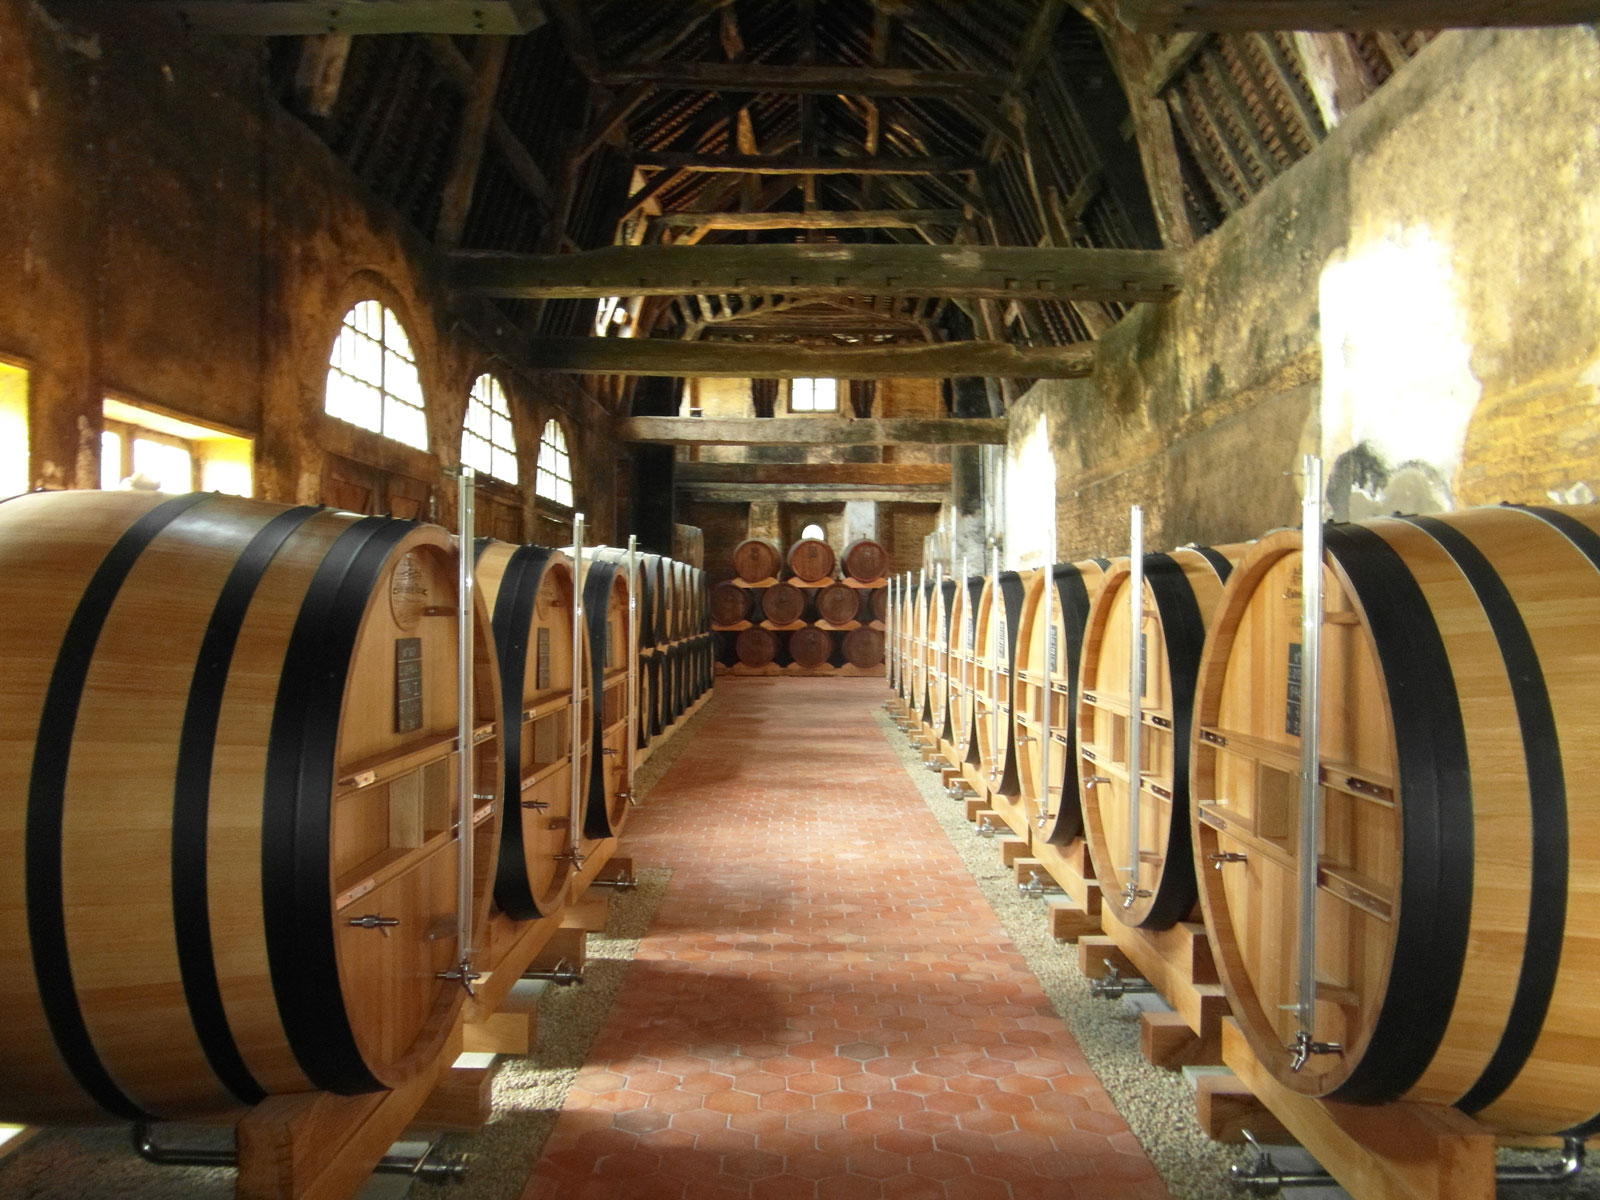 oak-wine-barrels-tonnellerie-allary-france-1-FT-BLOG0418.jpg